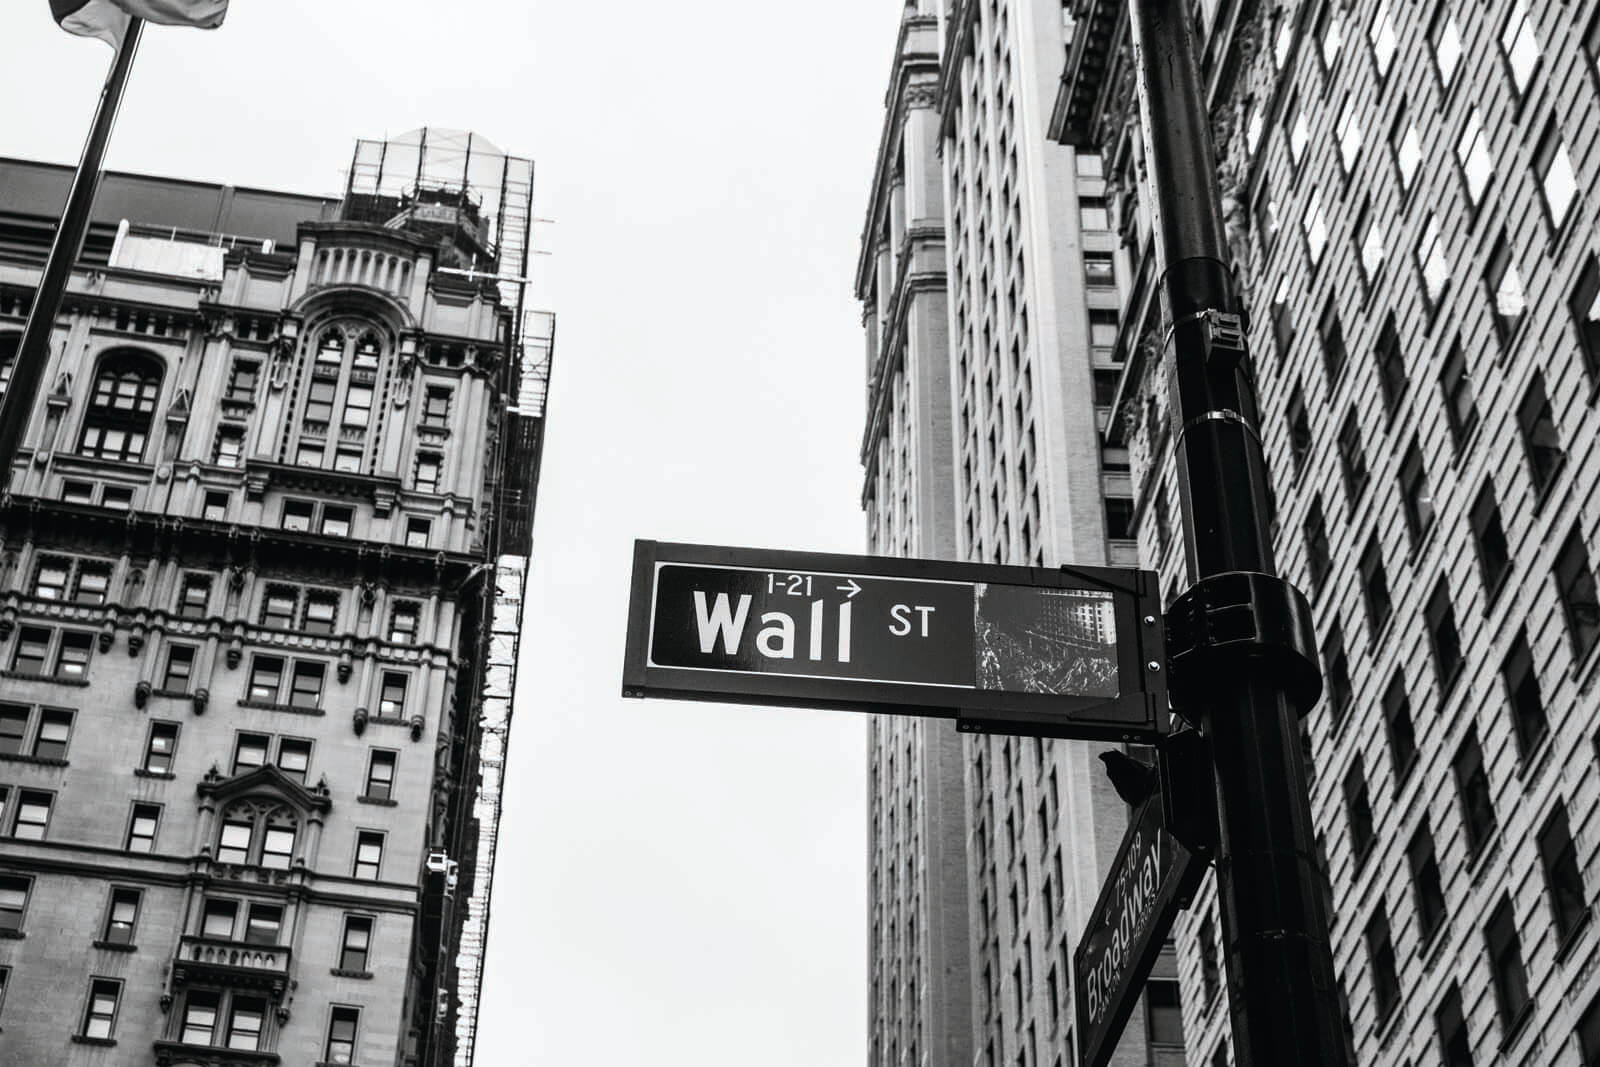 Will records continue on Wall St.?